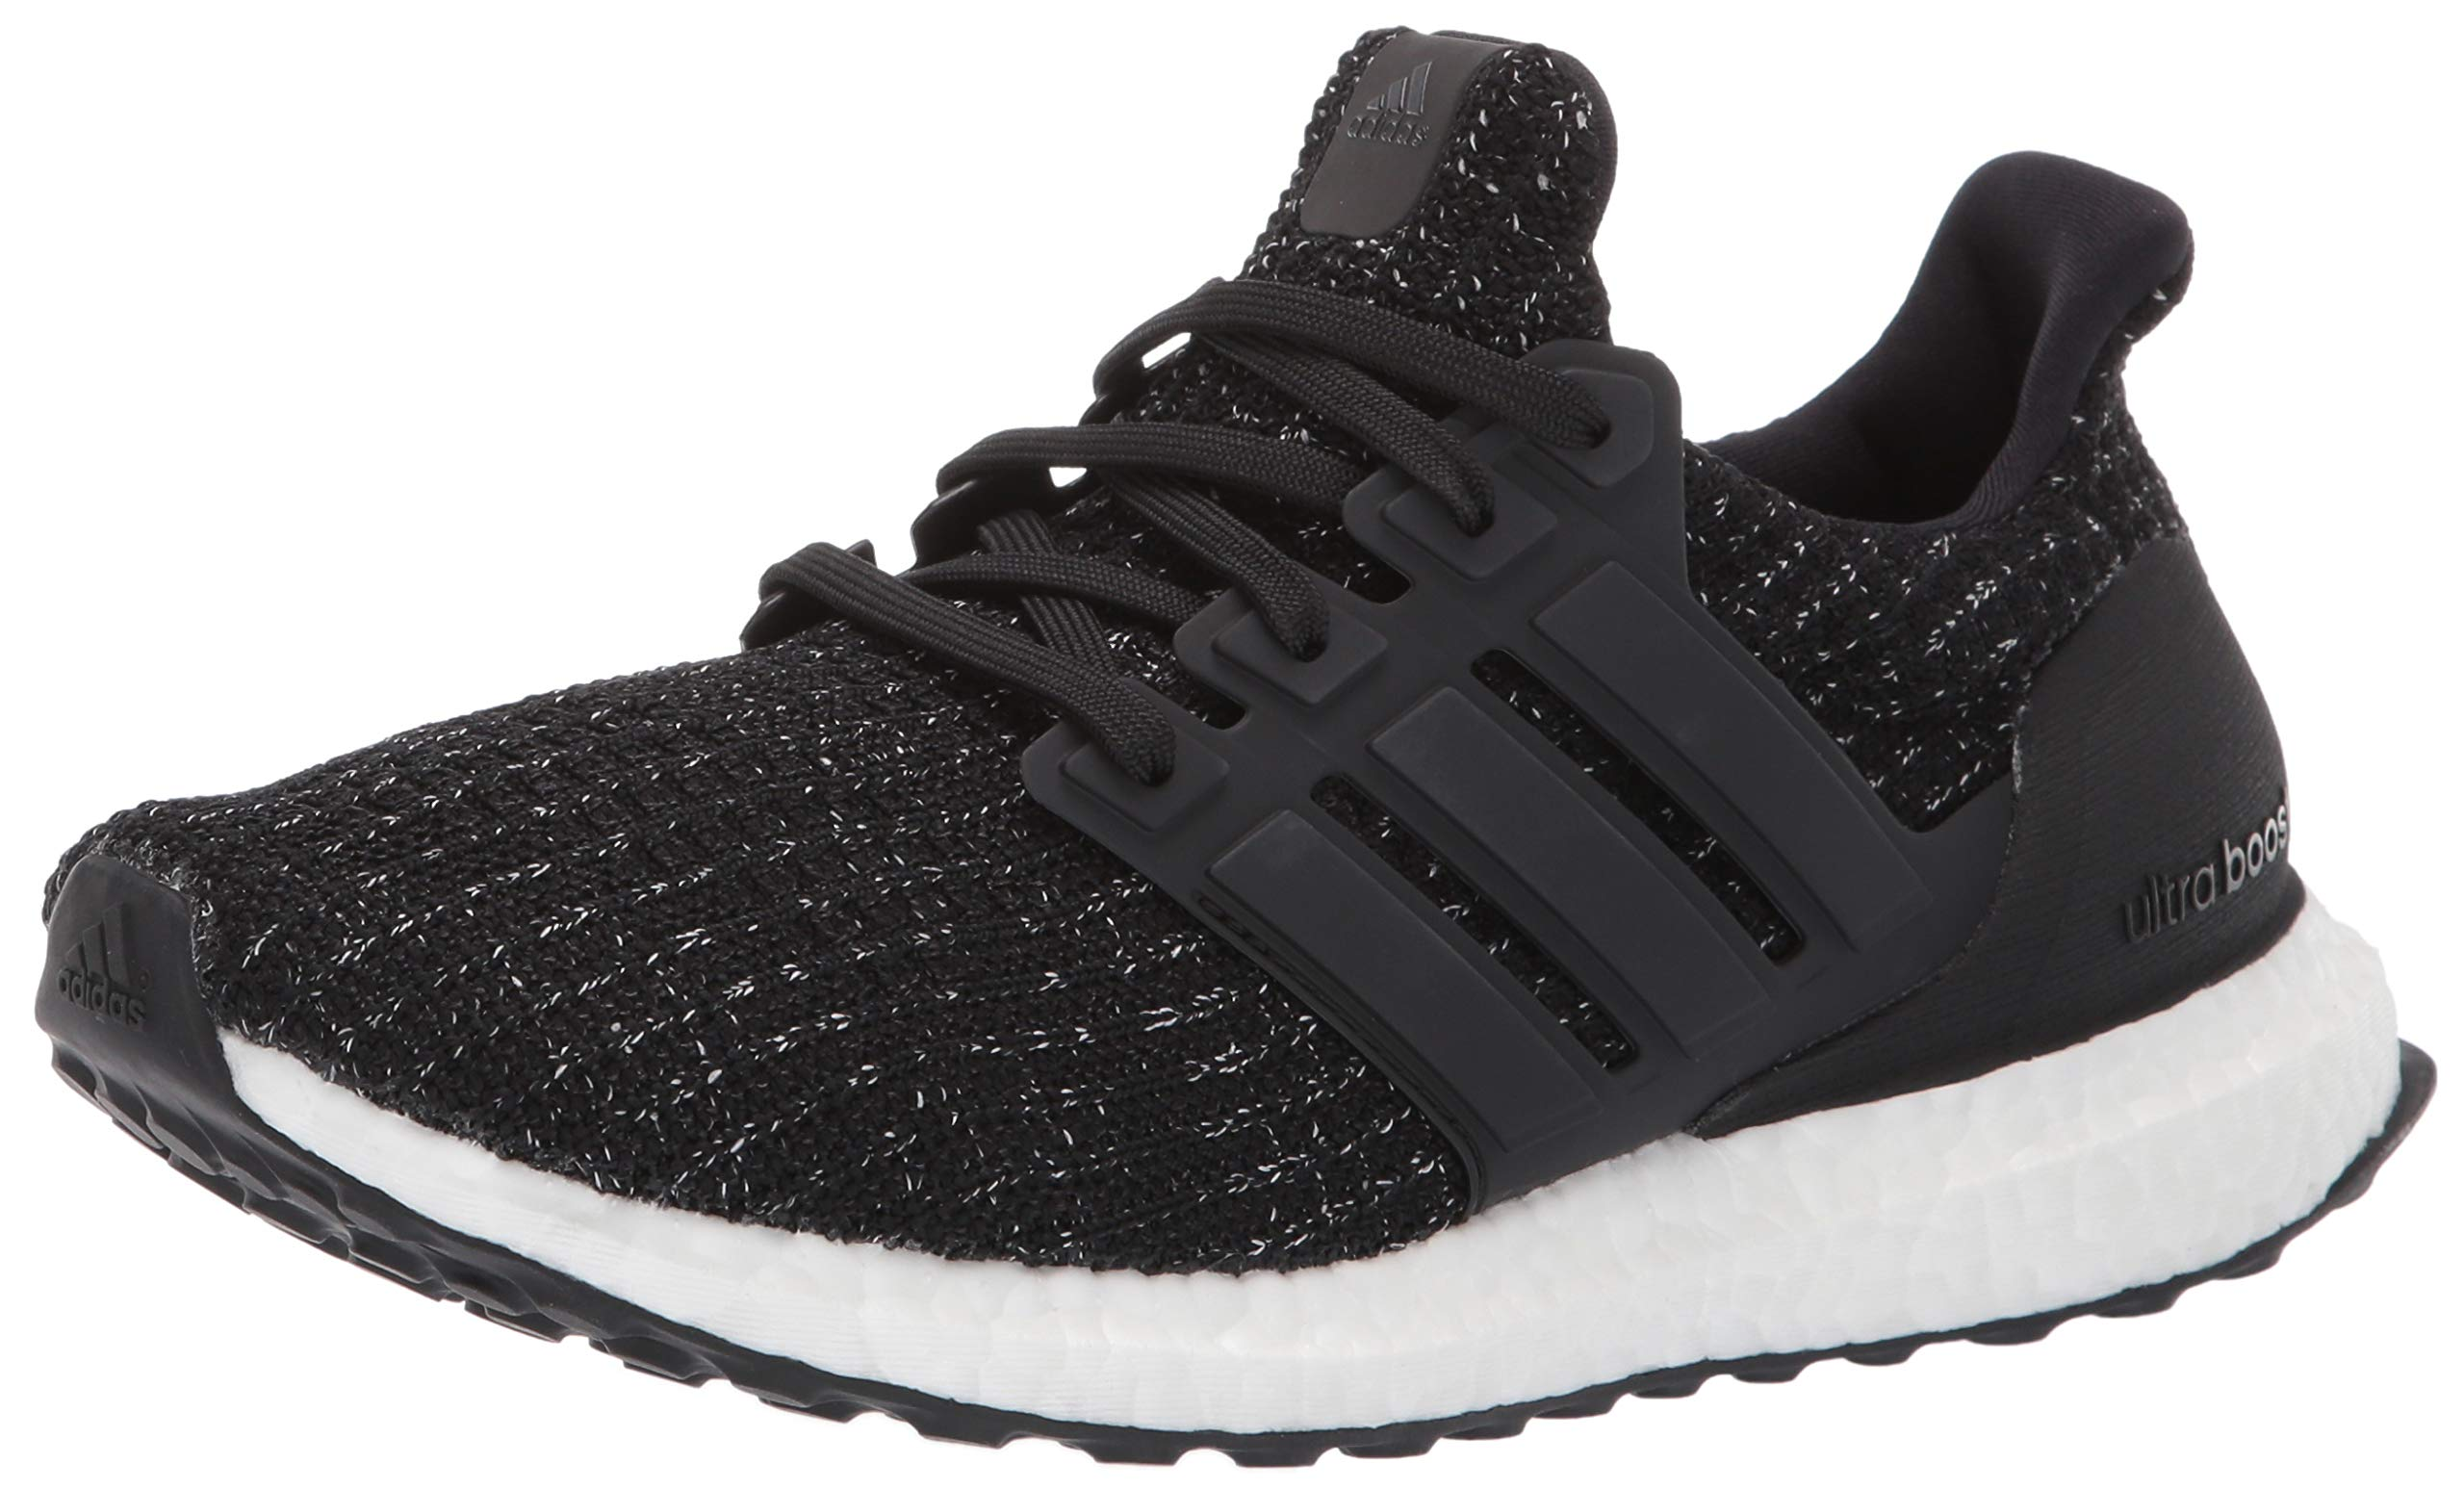 adidas Women's Ultraboost, black/black/white 1, 9 M US